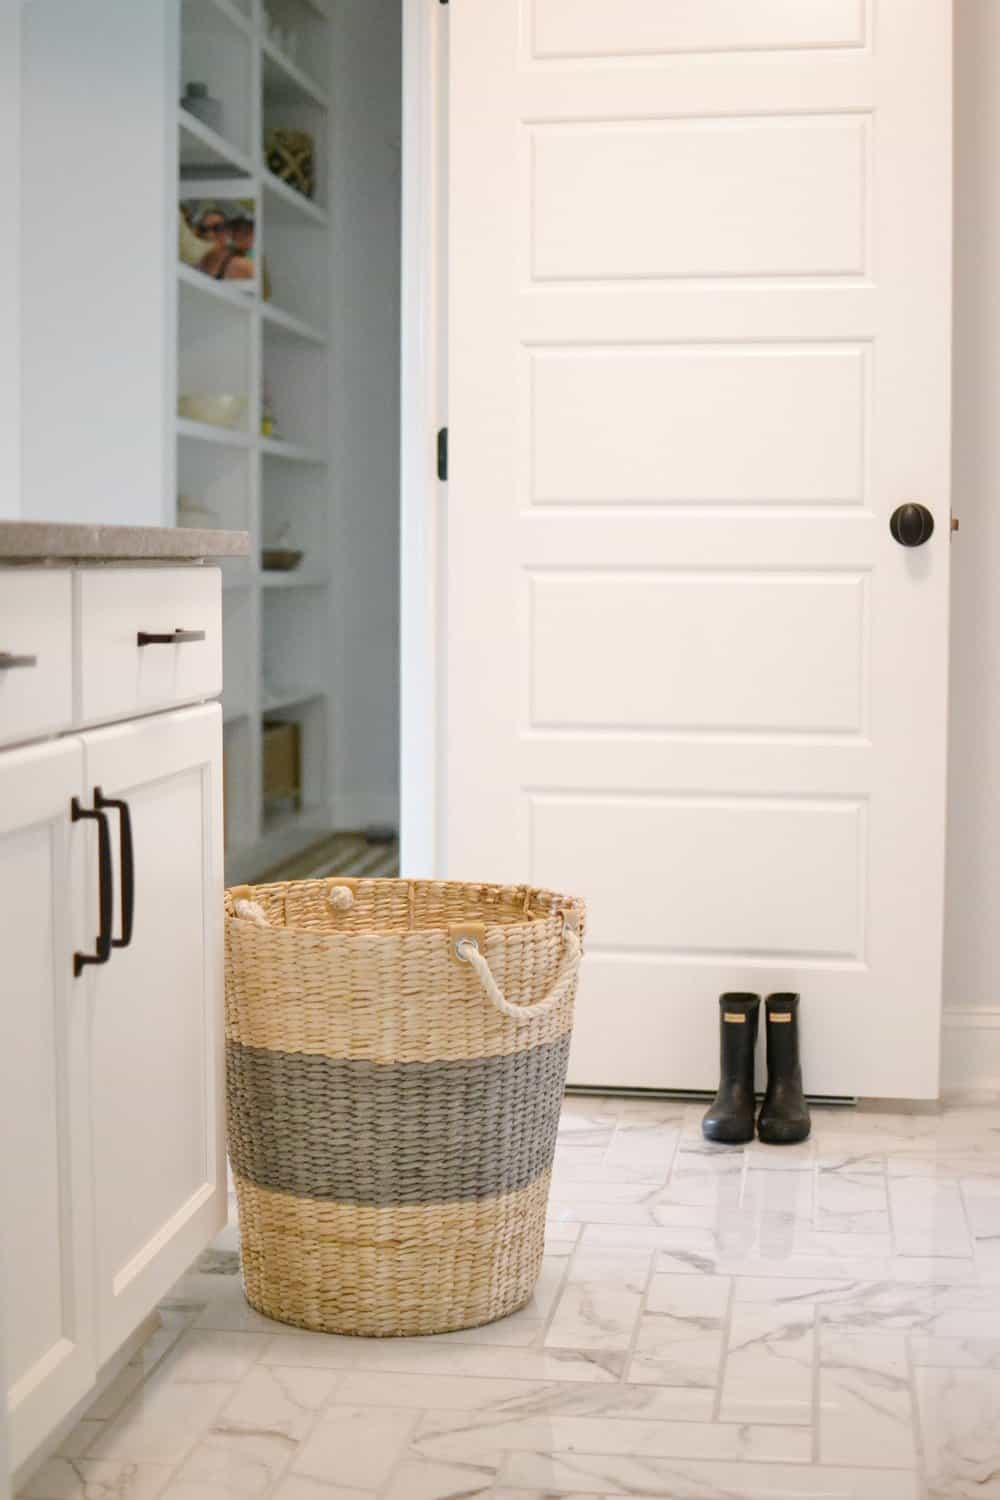 laundry hamper from home centric in laundry room